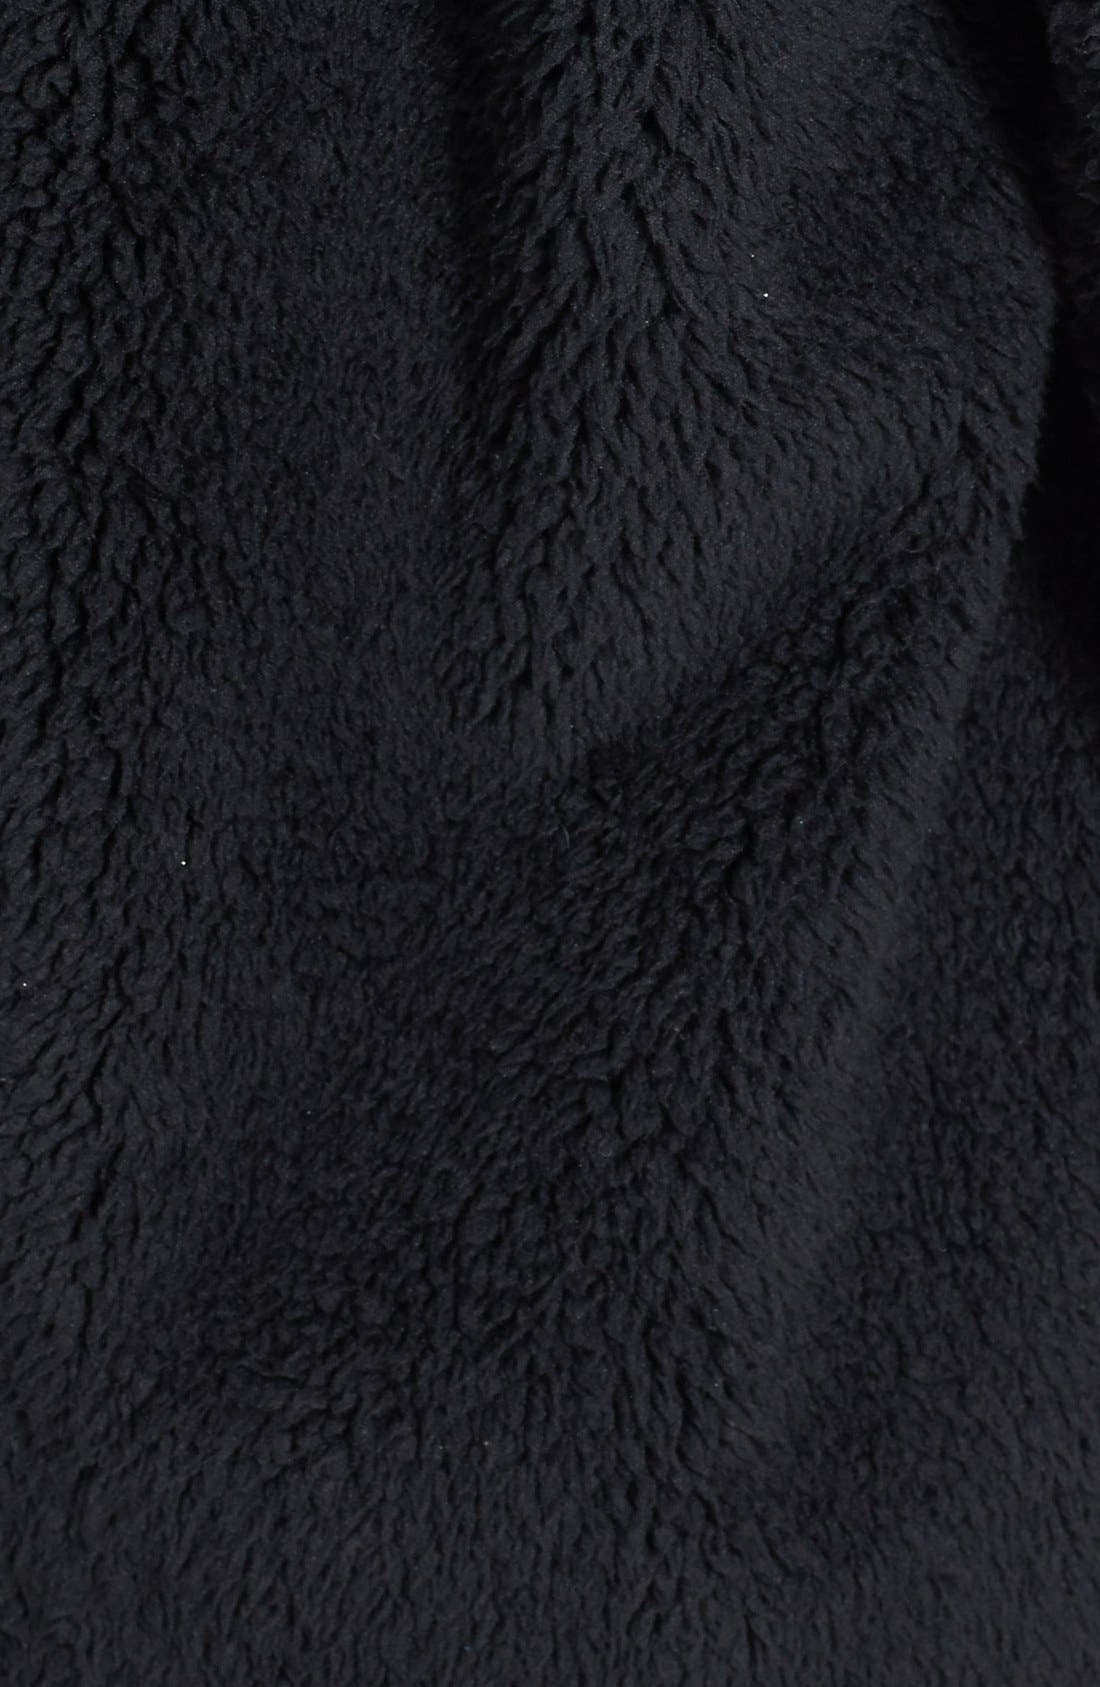 Oversized Fleece Coat,                             Alternate thumbnail 3, color,                             001